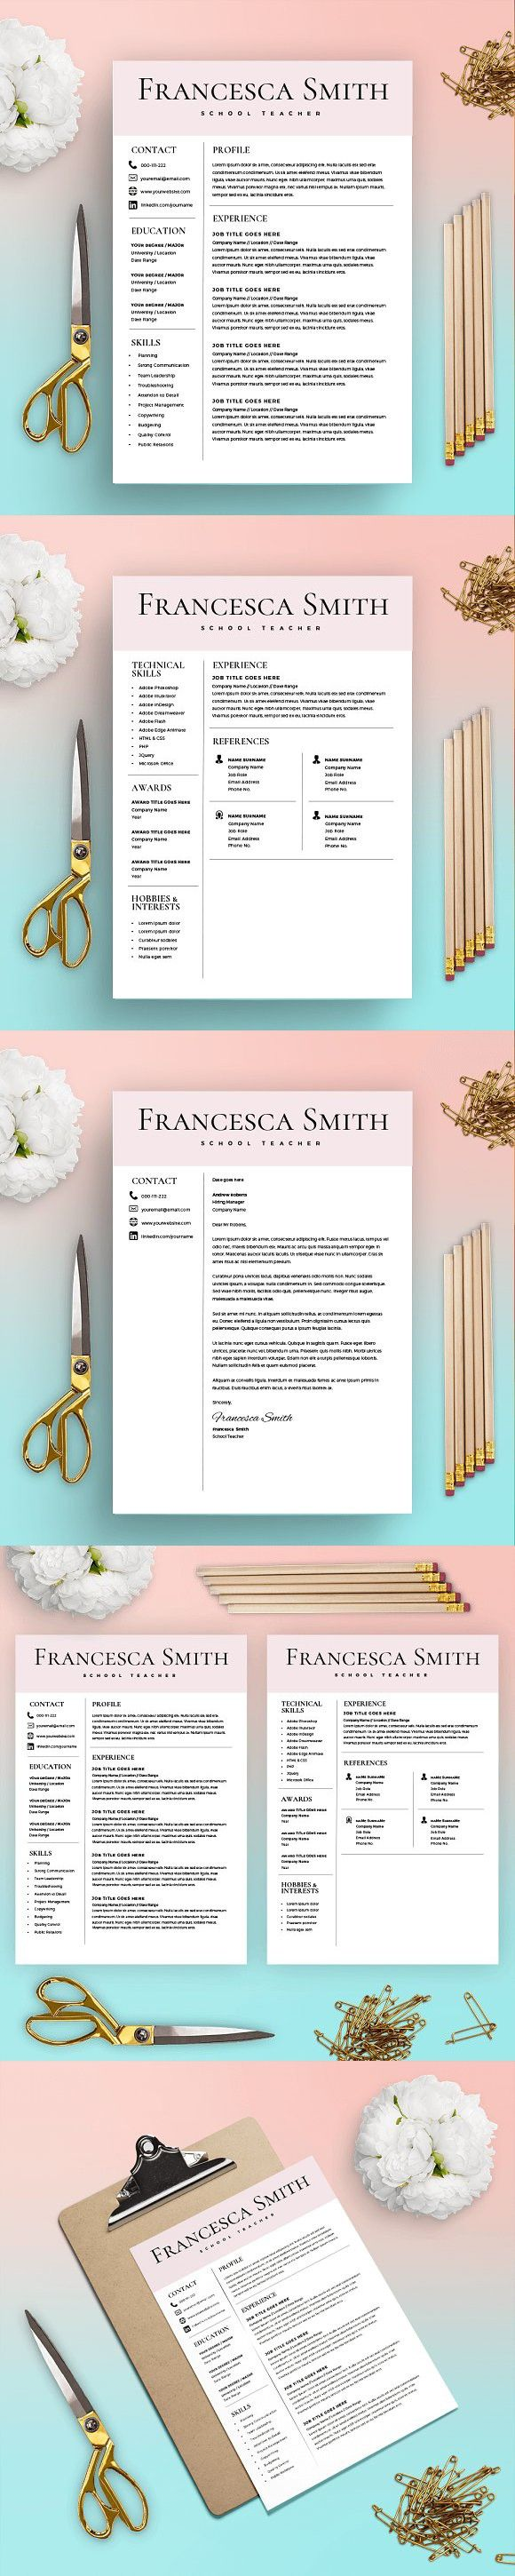 Resume Template - FREE Cover Letter. Resume Templates